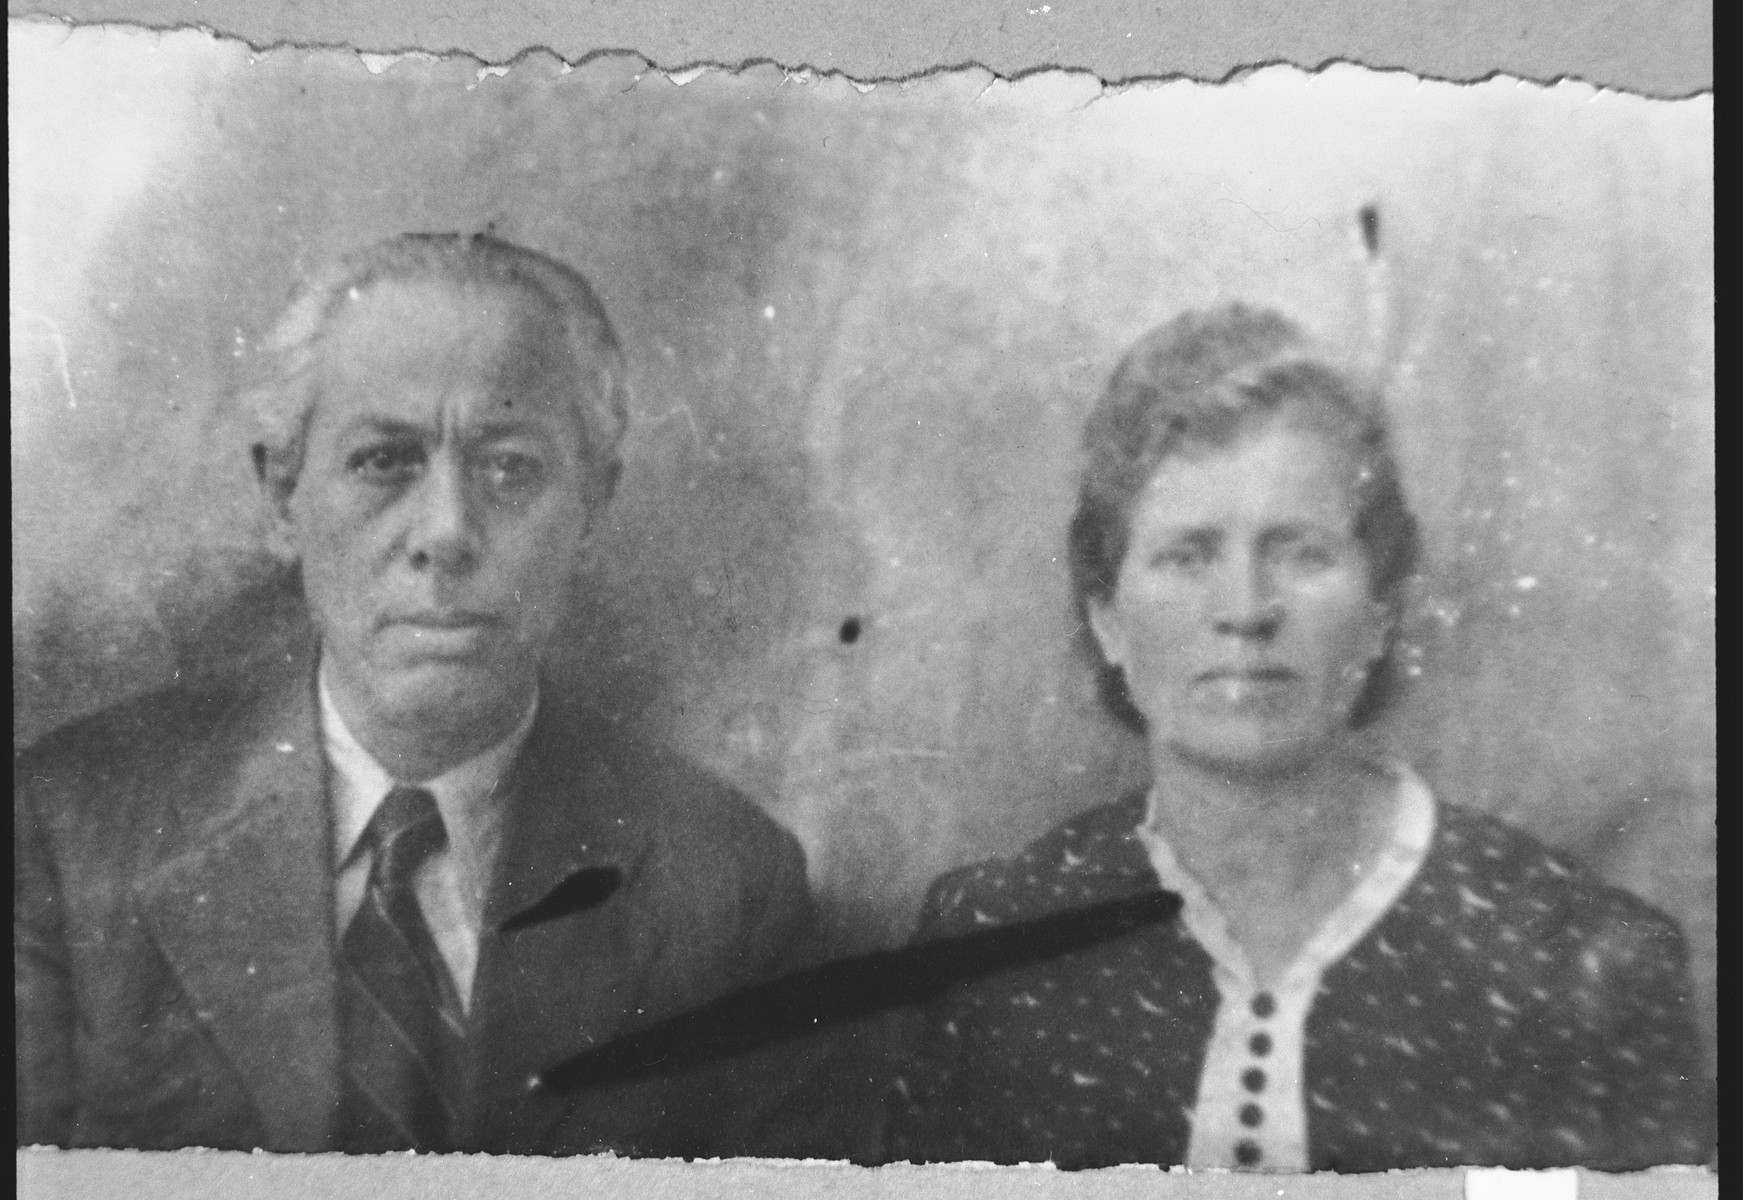 Portrait of Elieser Aladjem and his wife, Suzanna.  Elieser was a tailor.  They lived at Pashleva 7 in Bitola.